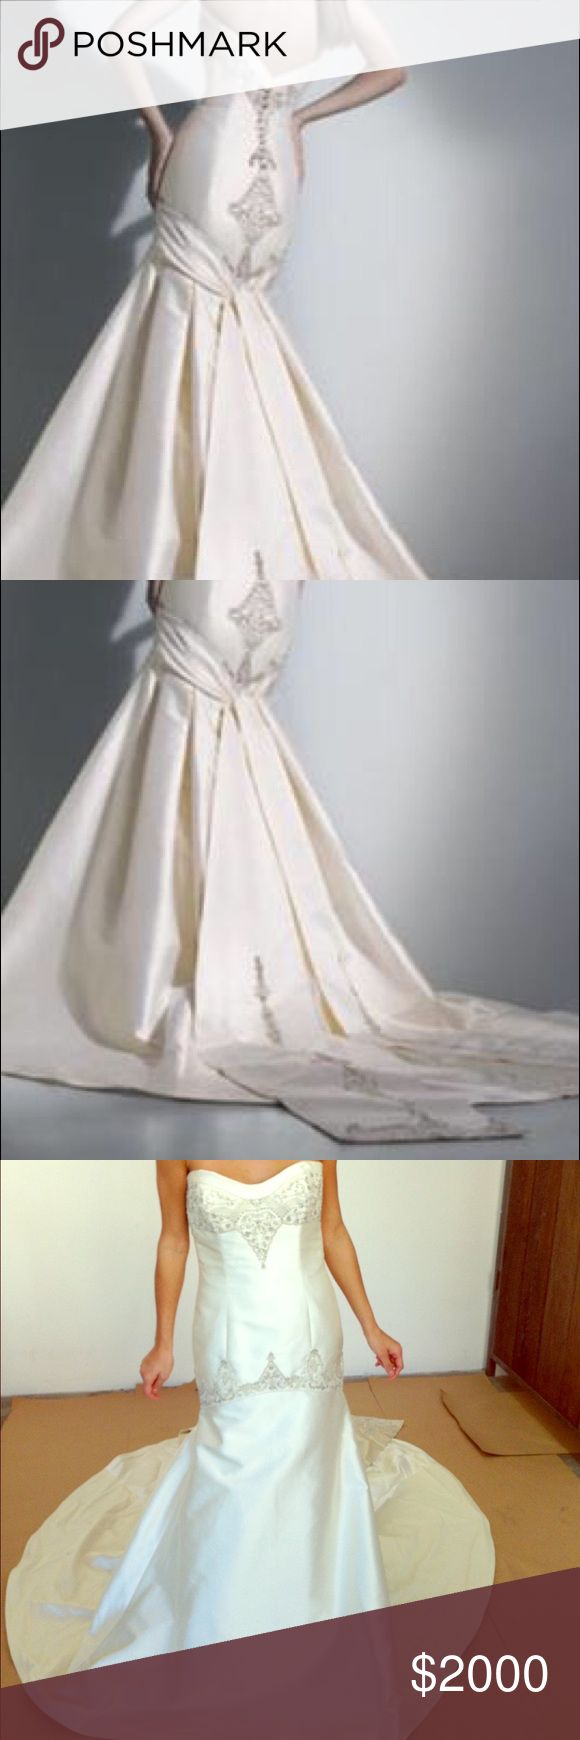 """Wedding Gown / Dress Platinum by Priscilla of Boston wedding gown. Gorgeous wedding dress! Never been worn! Style PL136 - purchased in 2008 - color is ivory - label size 10 with a street size of 4 - bust 36 - waist 28 - hips 36 - height with shoes 5' 8"""" - dress details: fit-to-flare gown has beaded dropped torso with embroidered duchess satin tails. Ivory silk/cotton mikado with beaded champagne tails. Beaded strapless sweetheart neckline. Low back w/ beaded details. Brand new! Make me an…"""